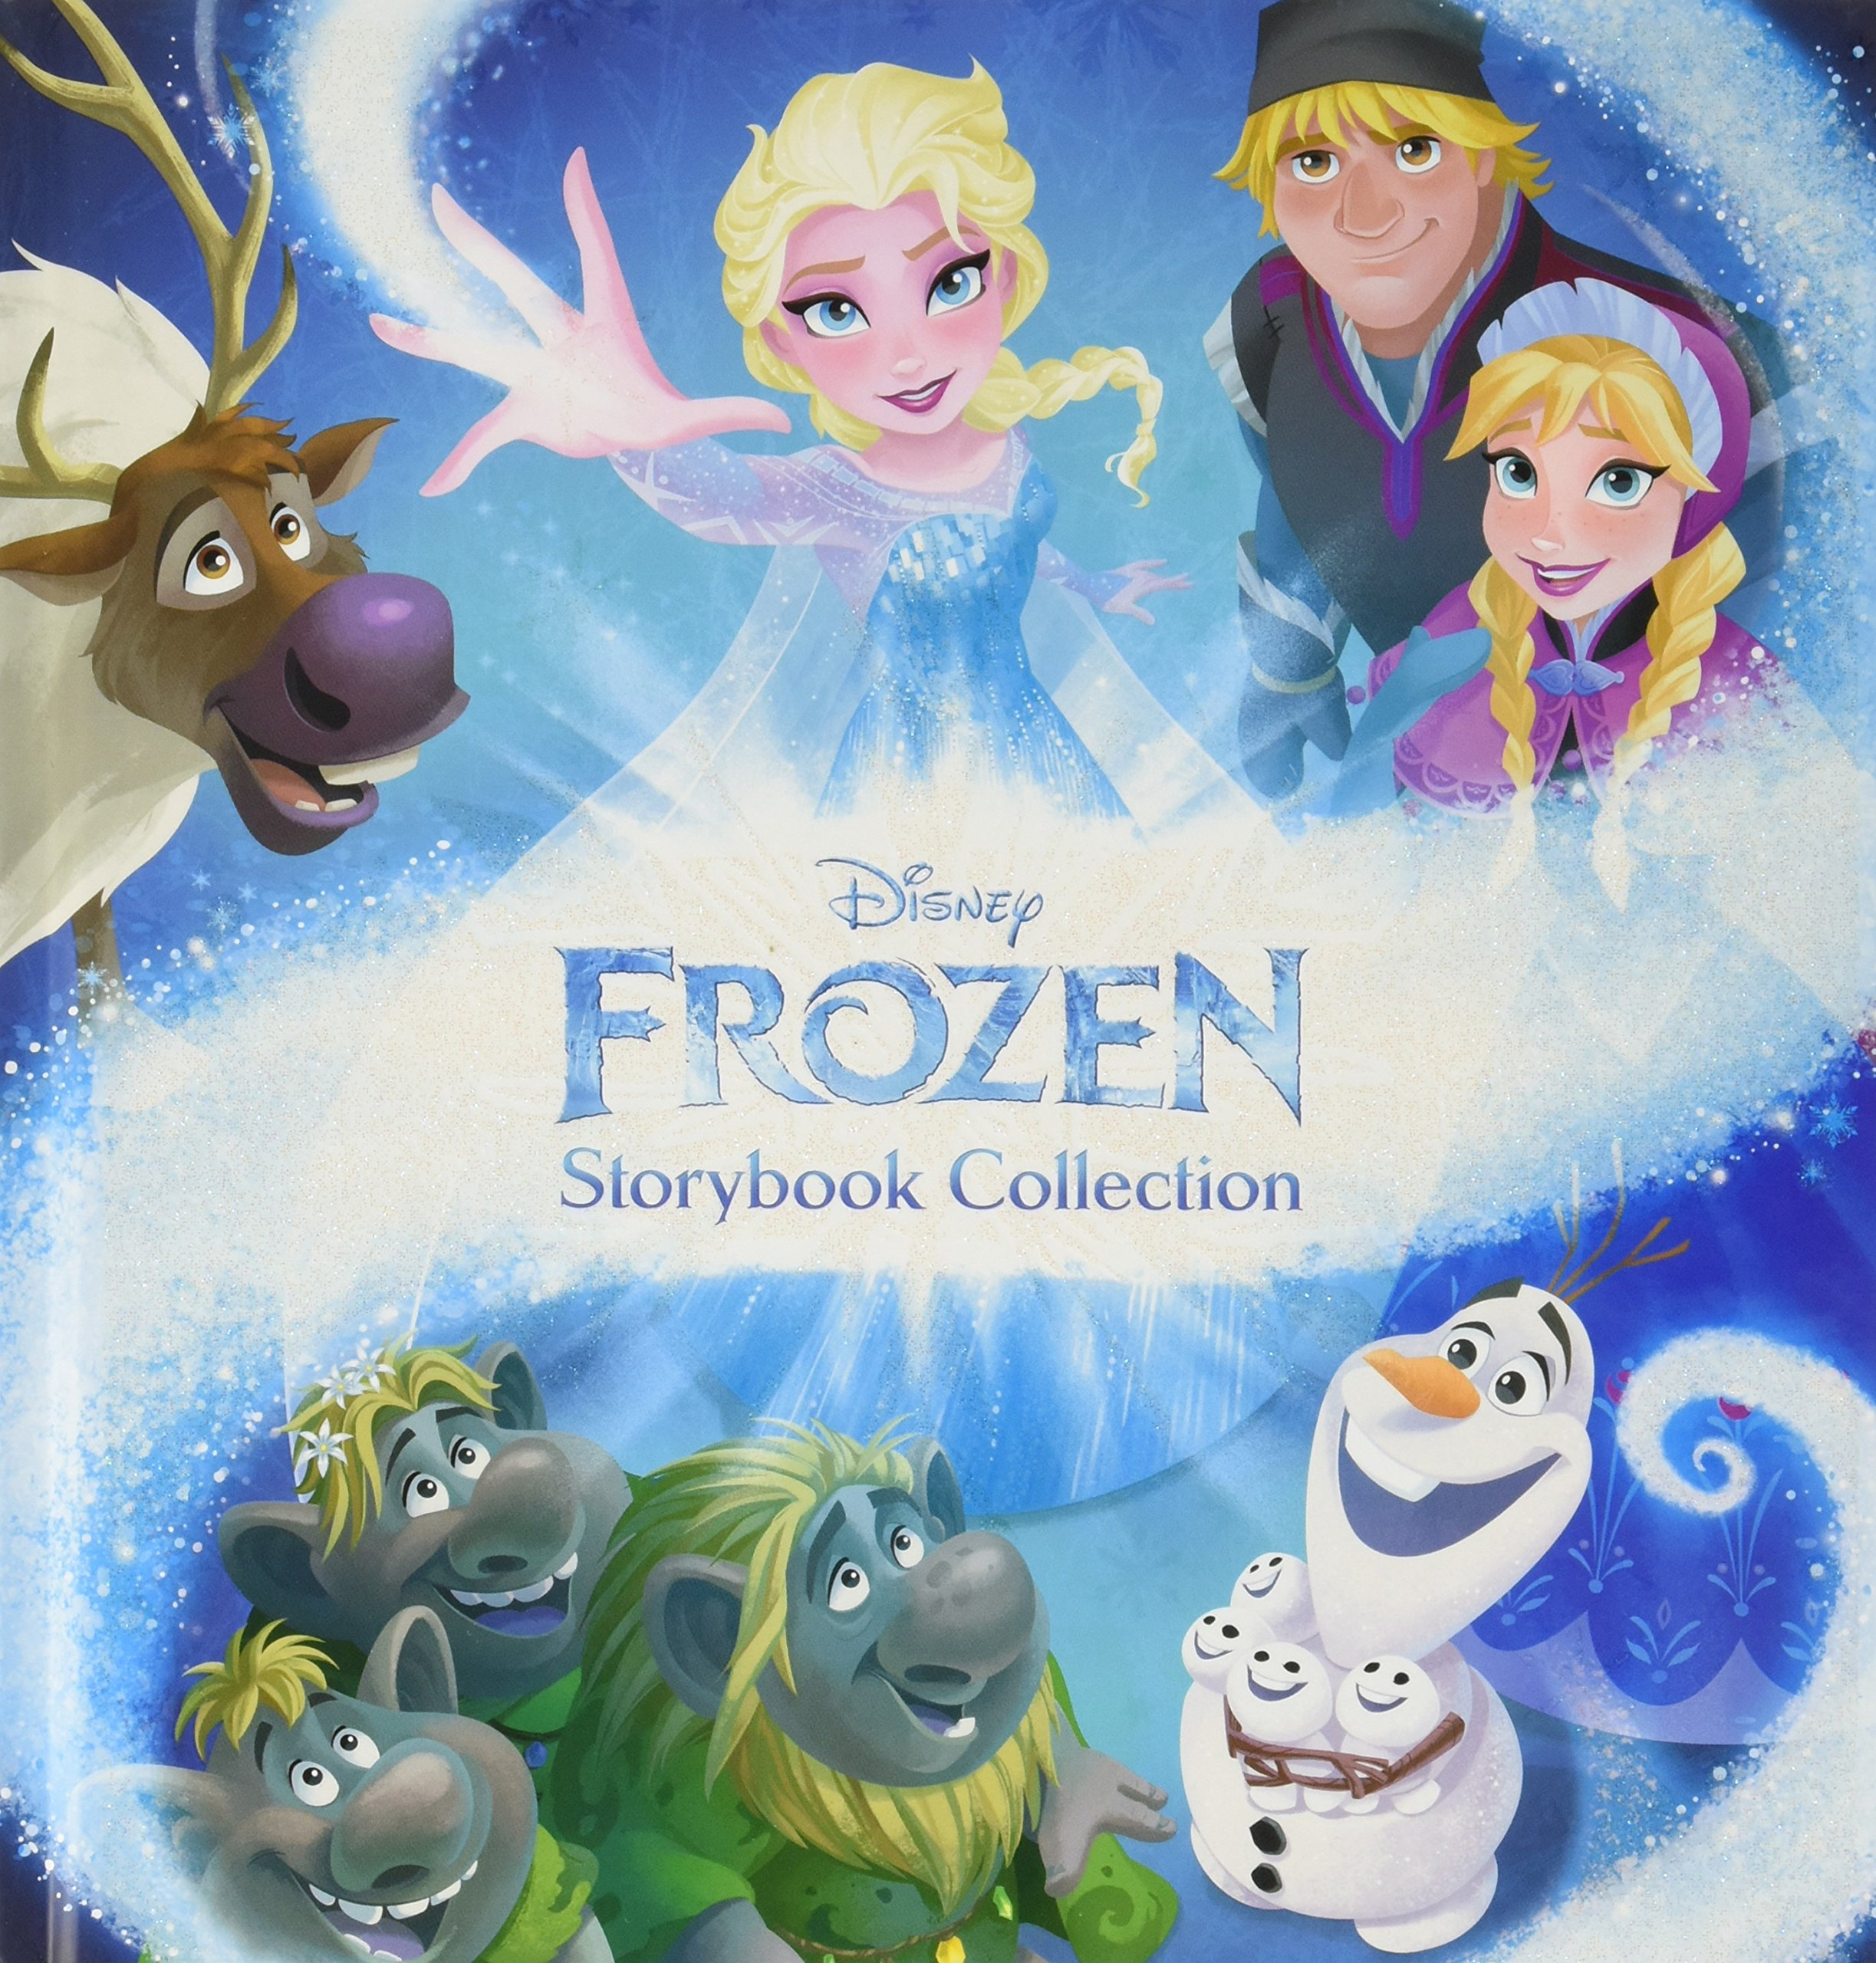 Image result for Frozen story book